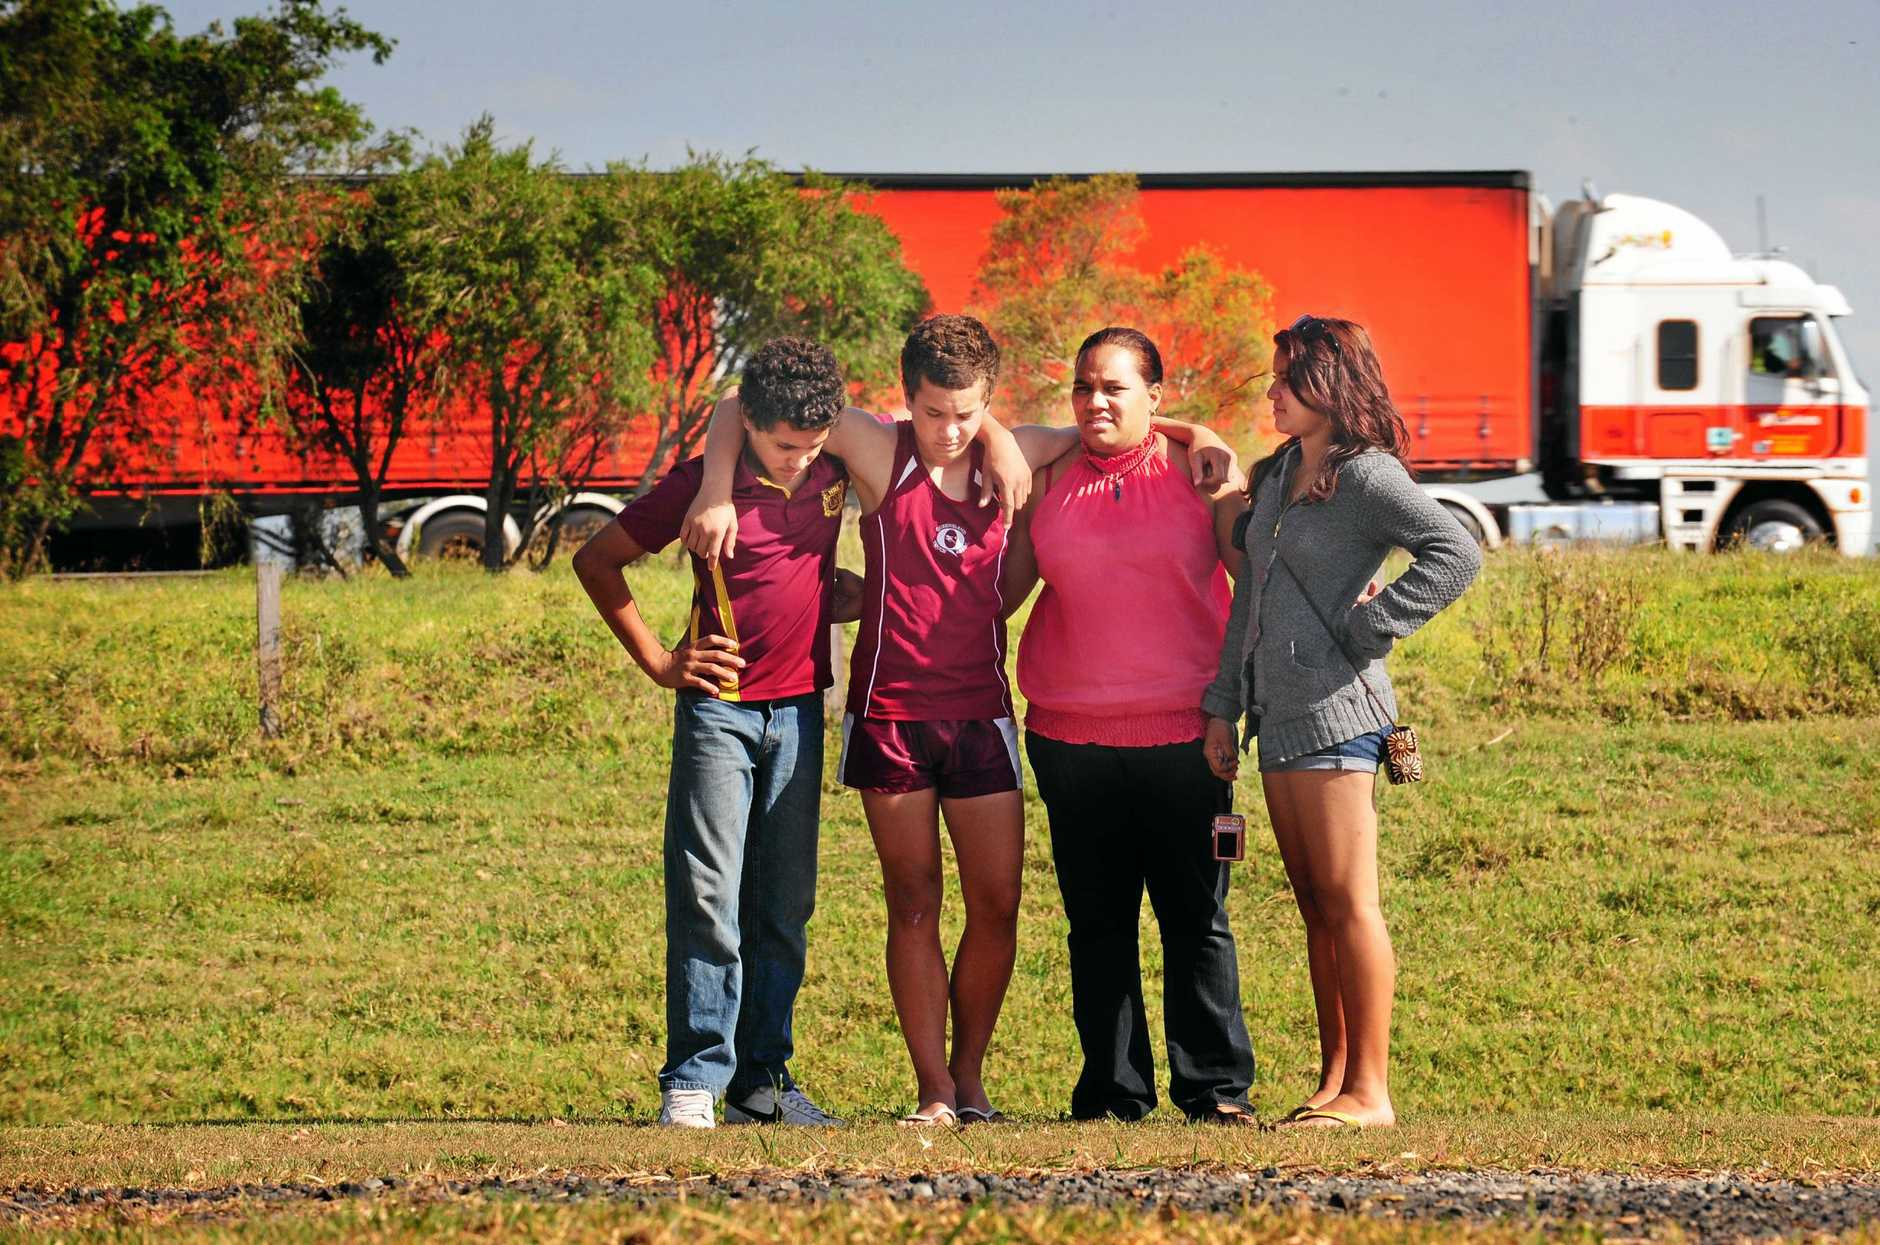 Cowper bus crash survivor Natisha Pitt (3rd from left) with her children William, 12, Alexander,13 and Elizabeth, 15 at the site of the Cowper Bus Crash memorial.